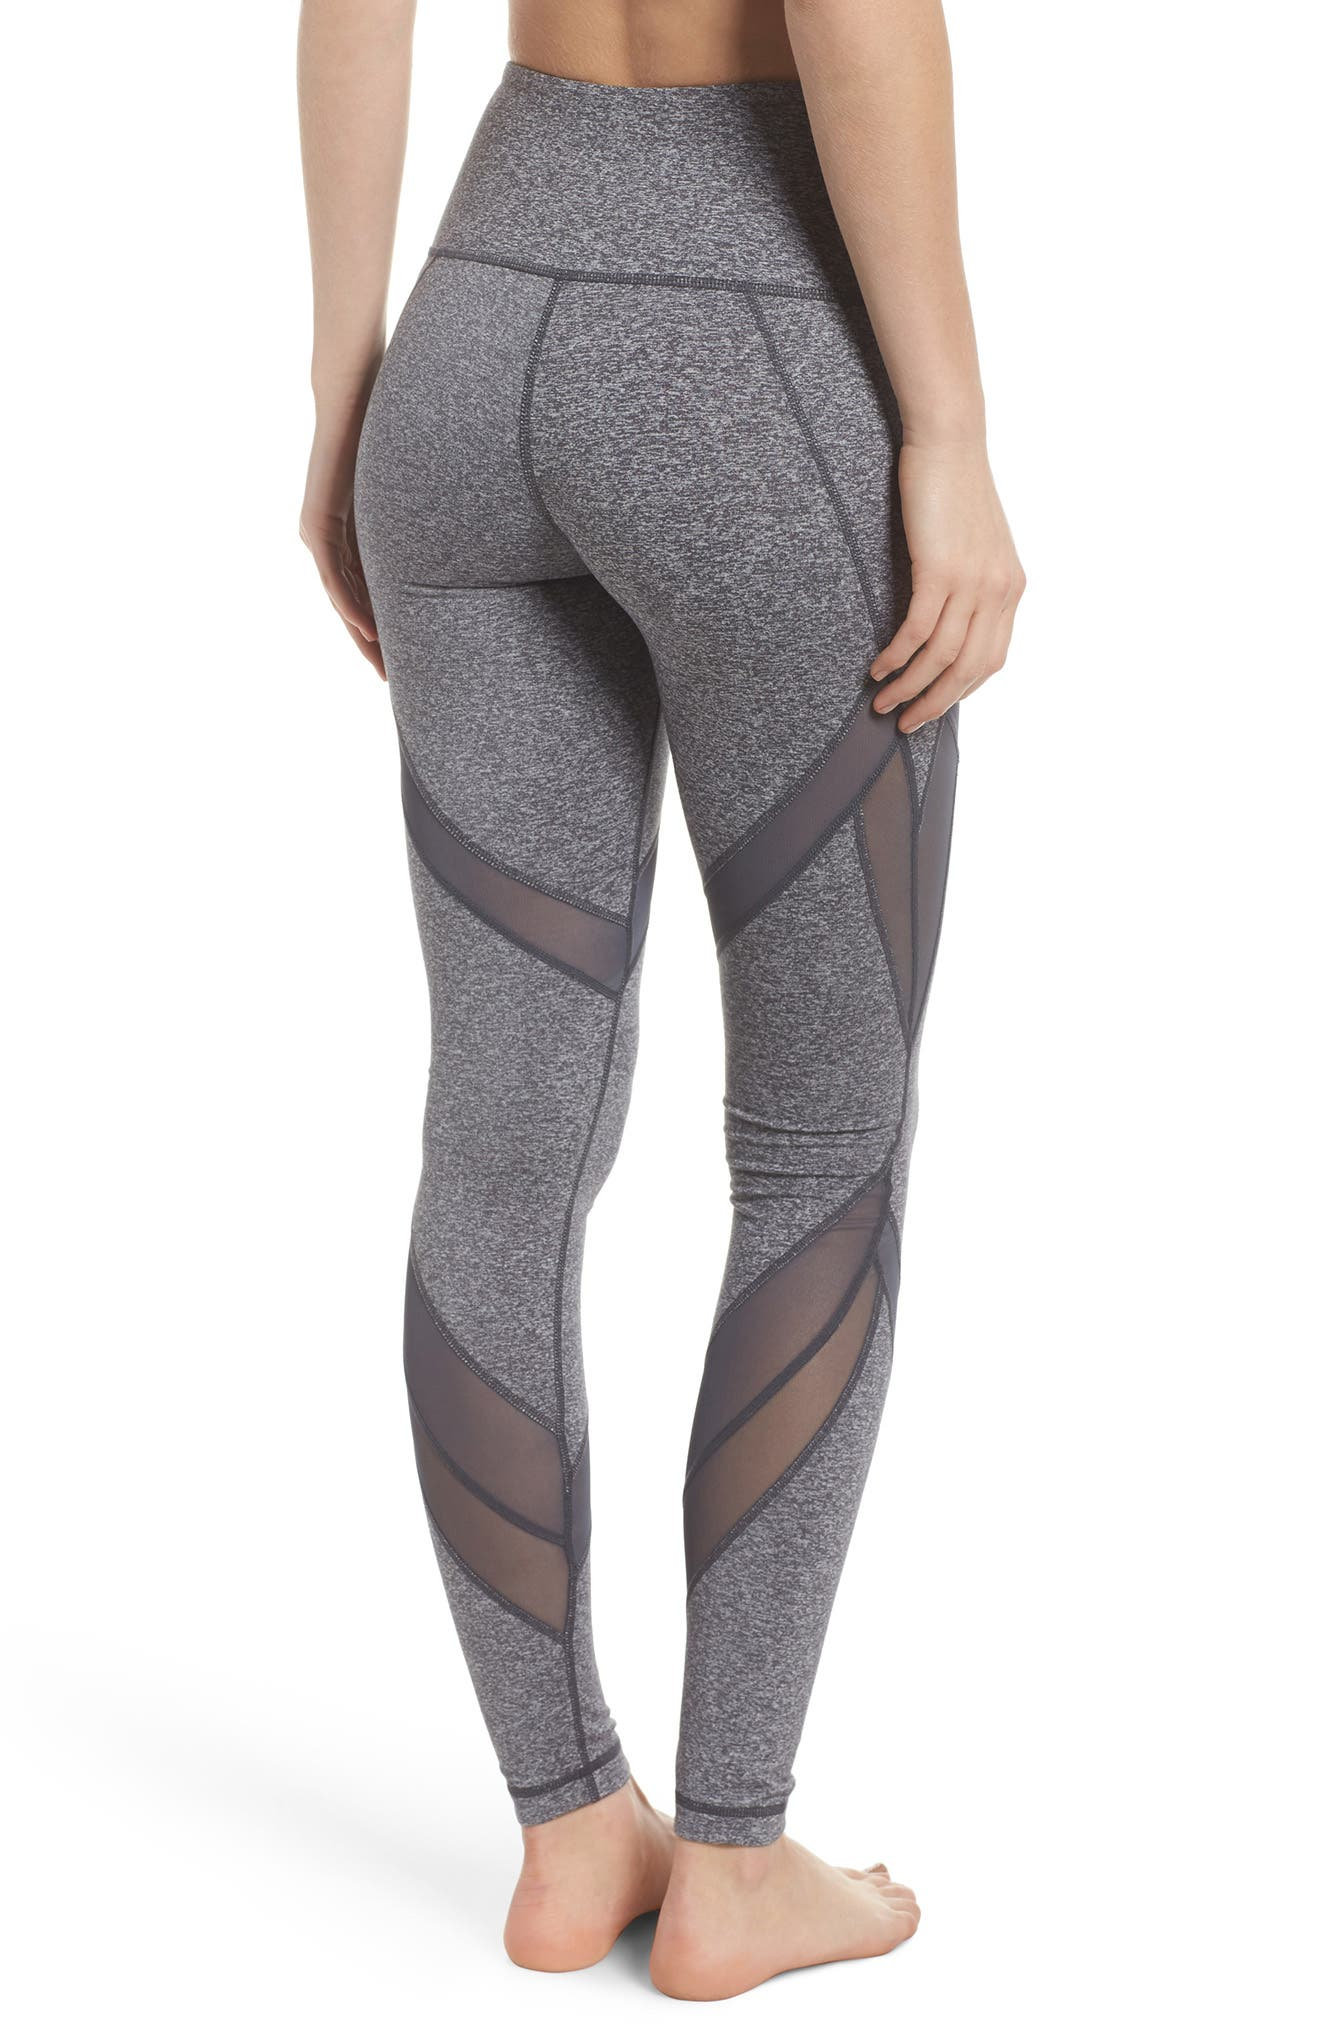 In Dreams High Waist Leggings,                             Alternate thumbnail 2, color,                             GREY GRAPHITE MELANGE